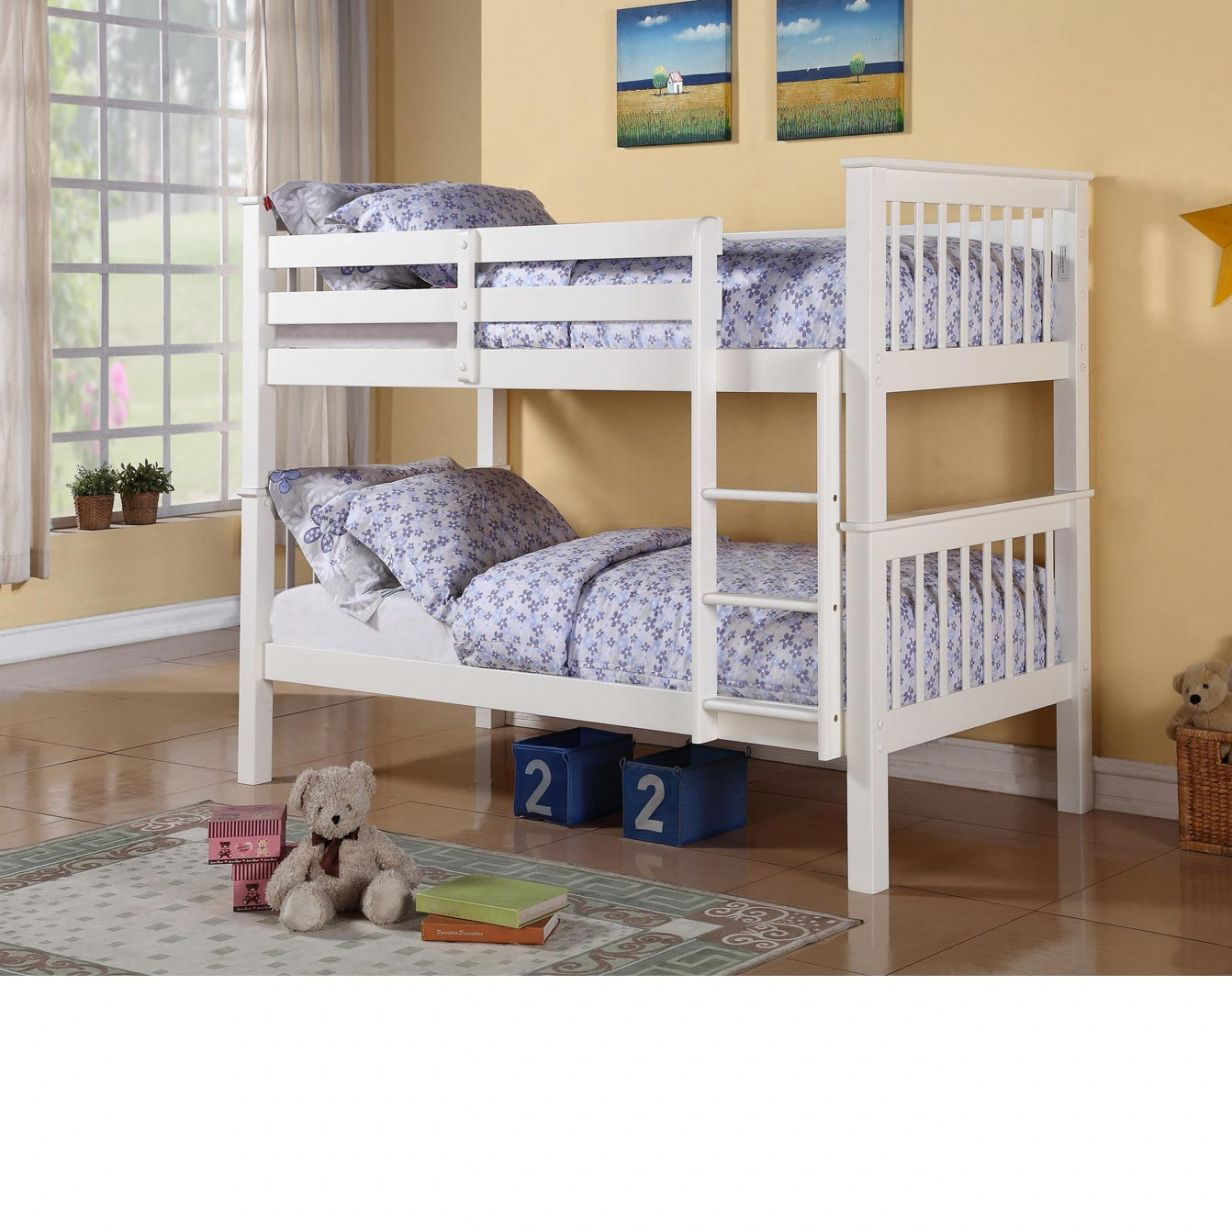 Pin Oleh Luciver Sanom Di Interior Inspiration Bedroom Bunk Beds